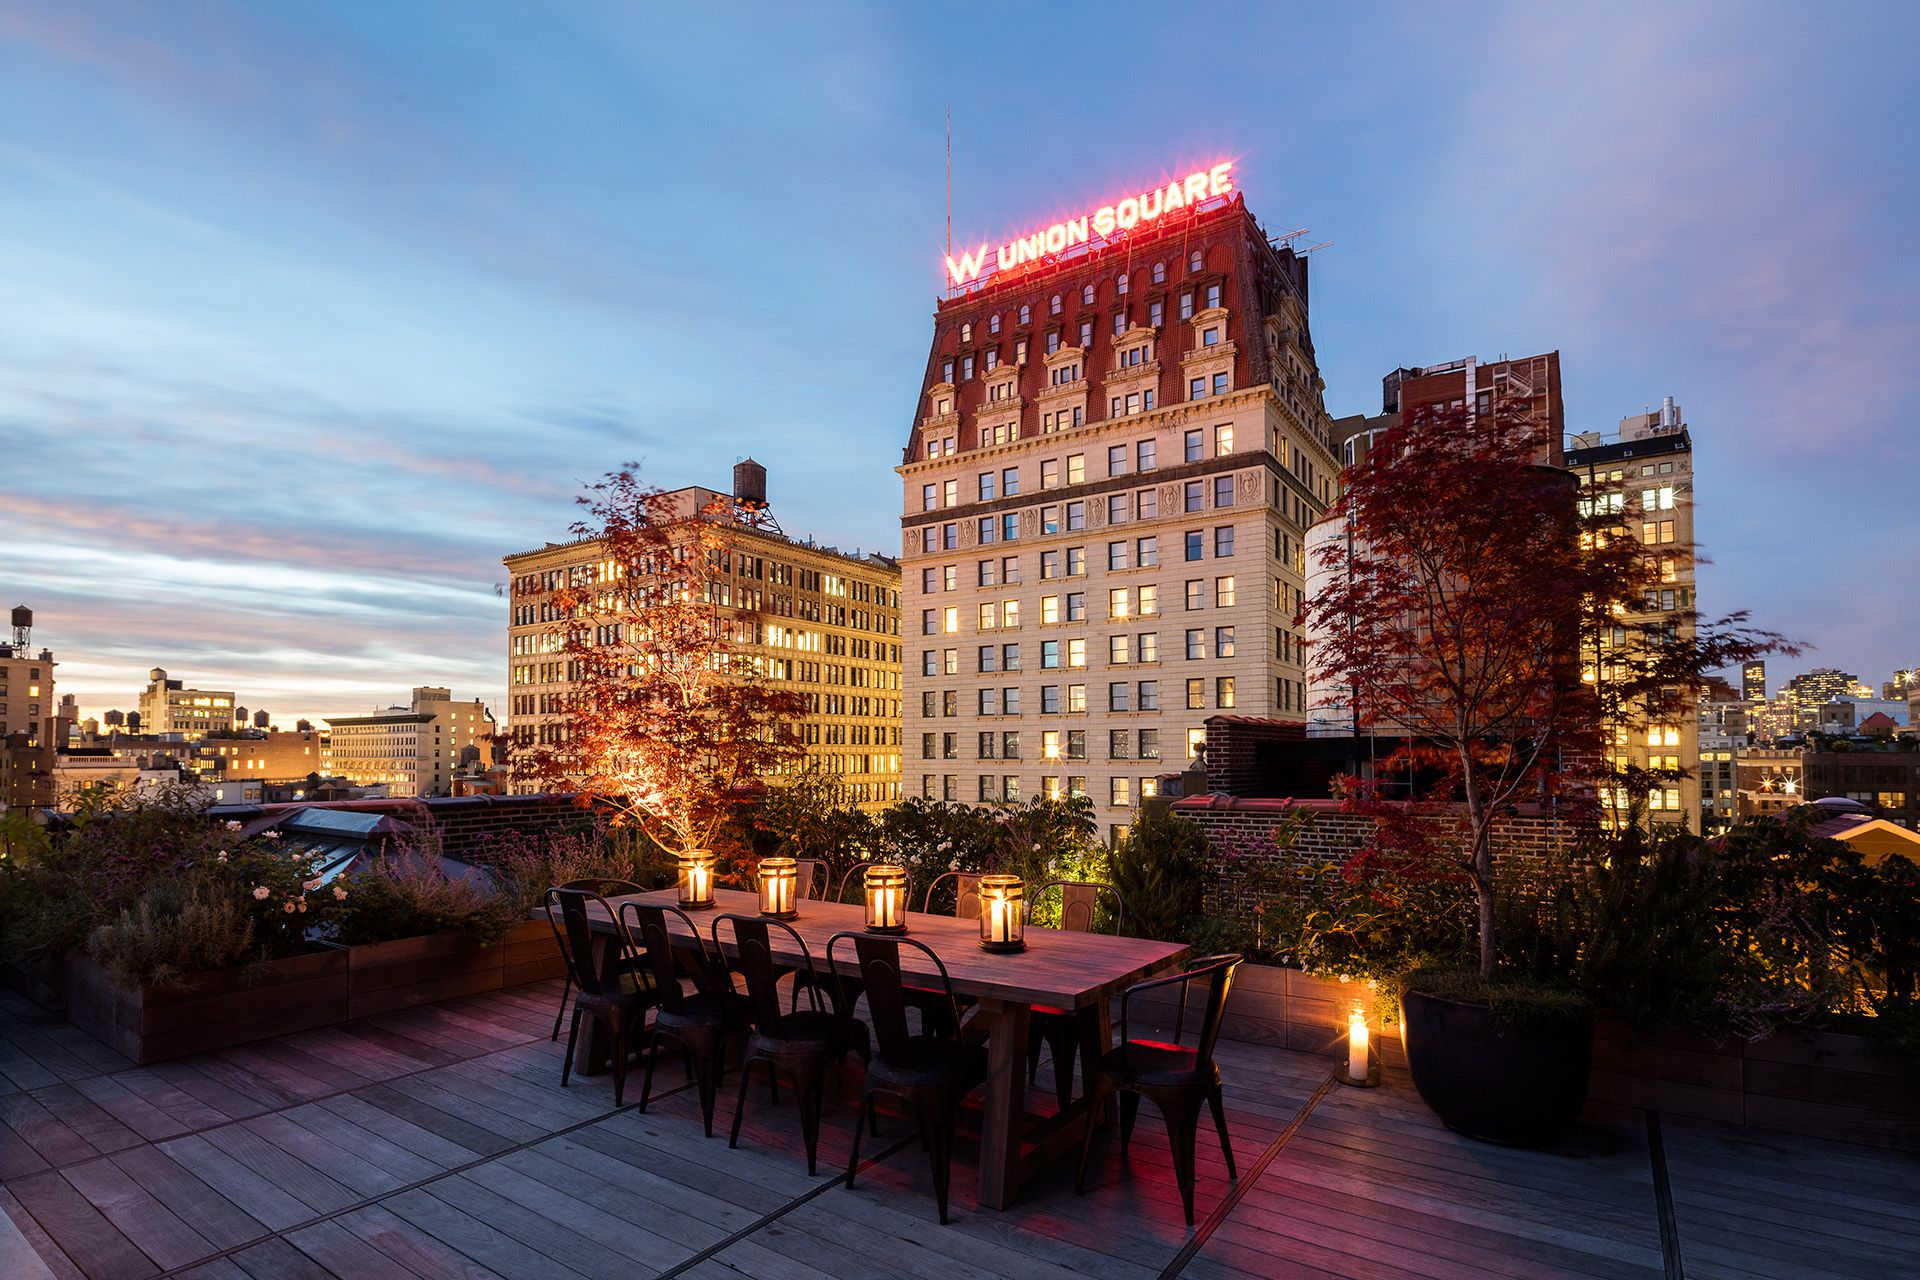 Union Square City Terrace Nyc Roof Garden Design Harrison Green